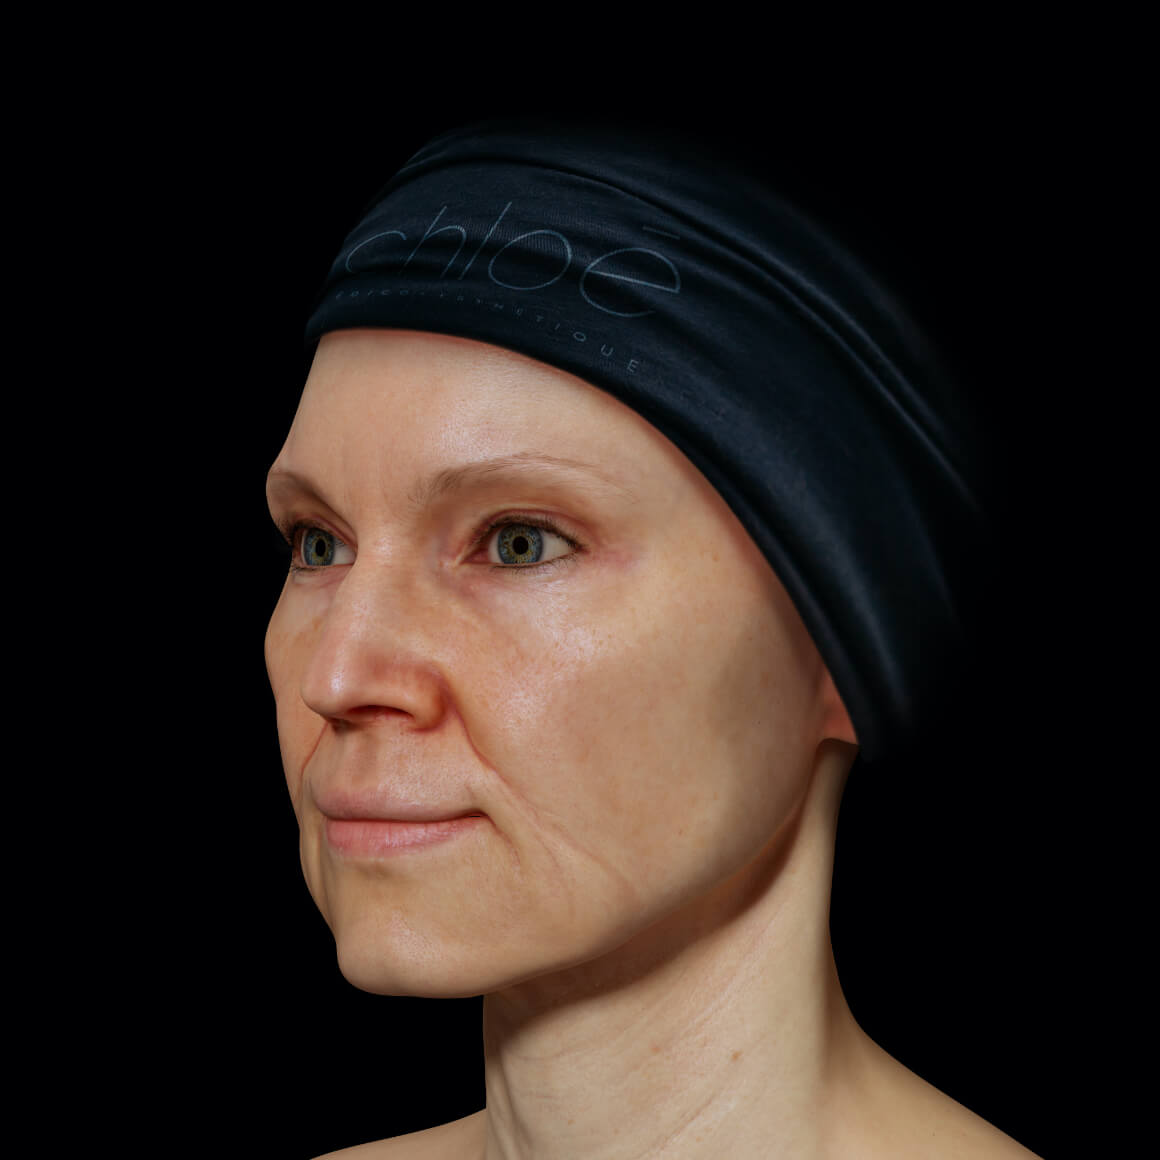 Female patient from Clinique Chloé positioned at an angle showing pronounced nasolabial folds and marionette lines